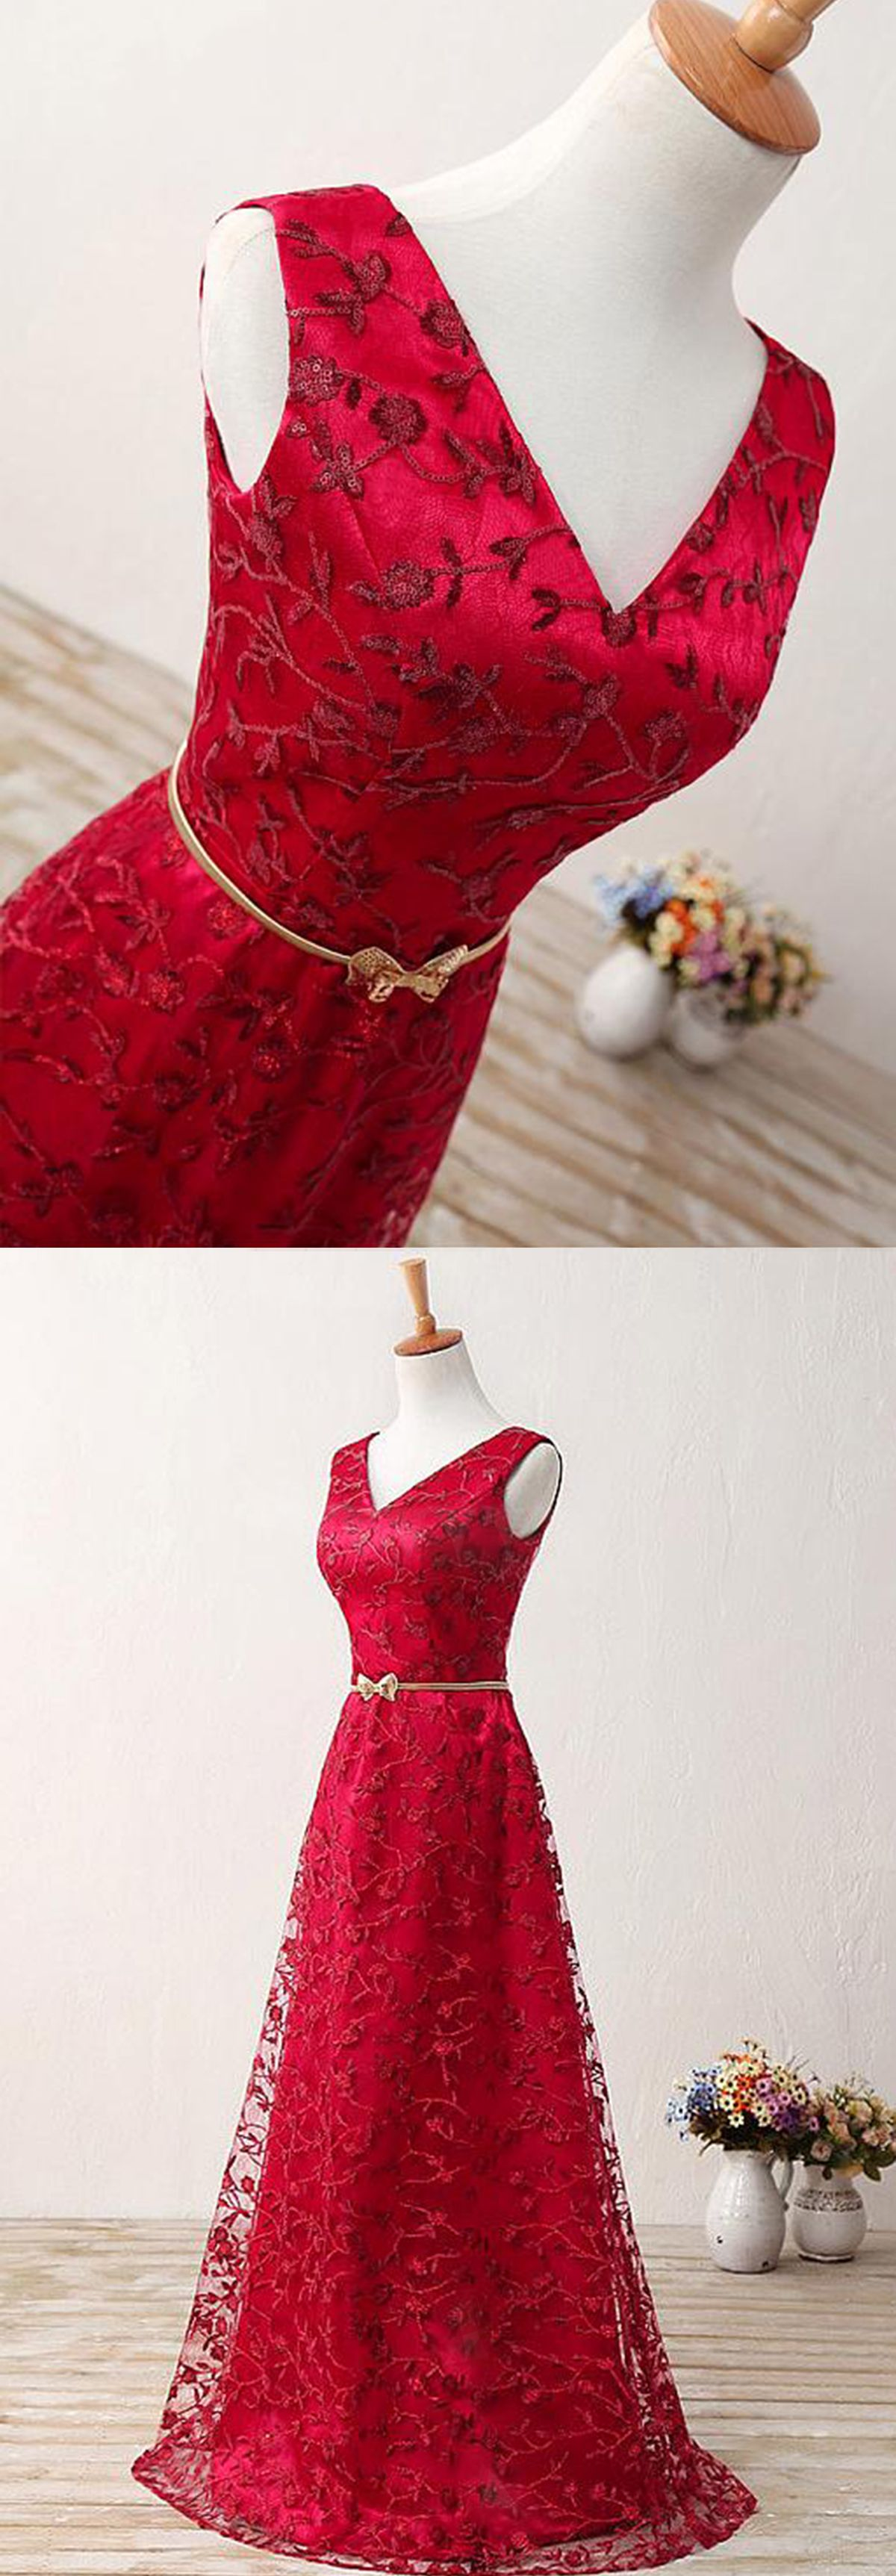 Stylish vneck red lace long prom dress with gold sash formatura